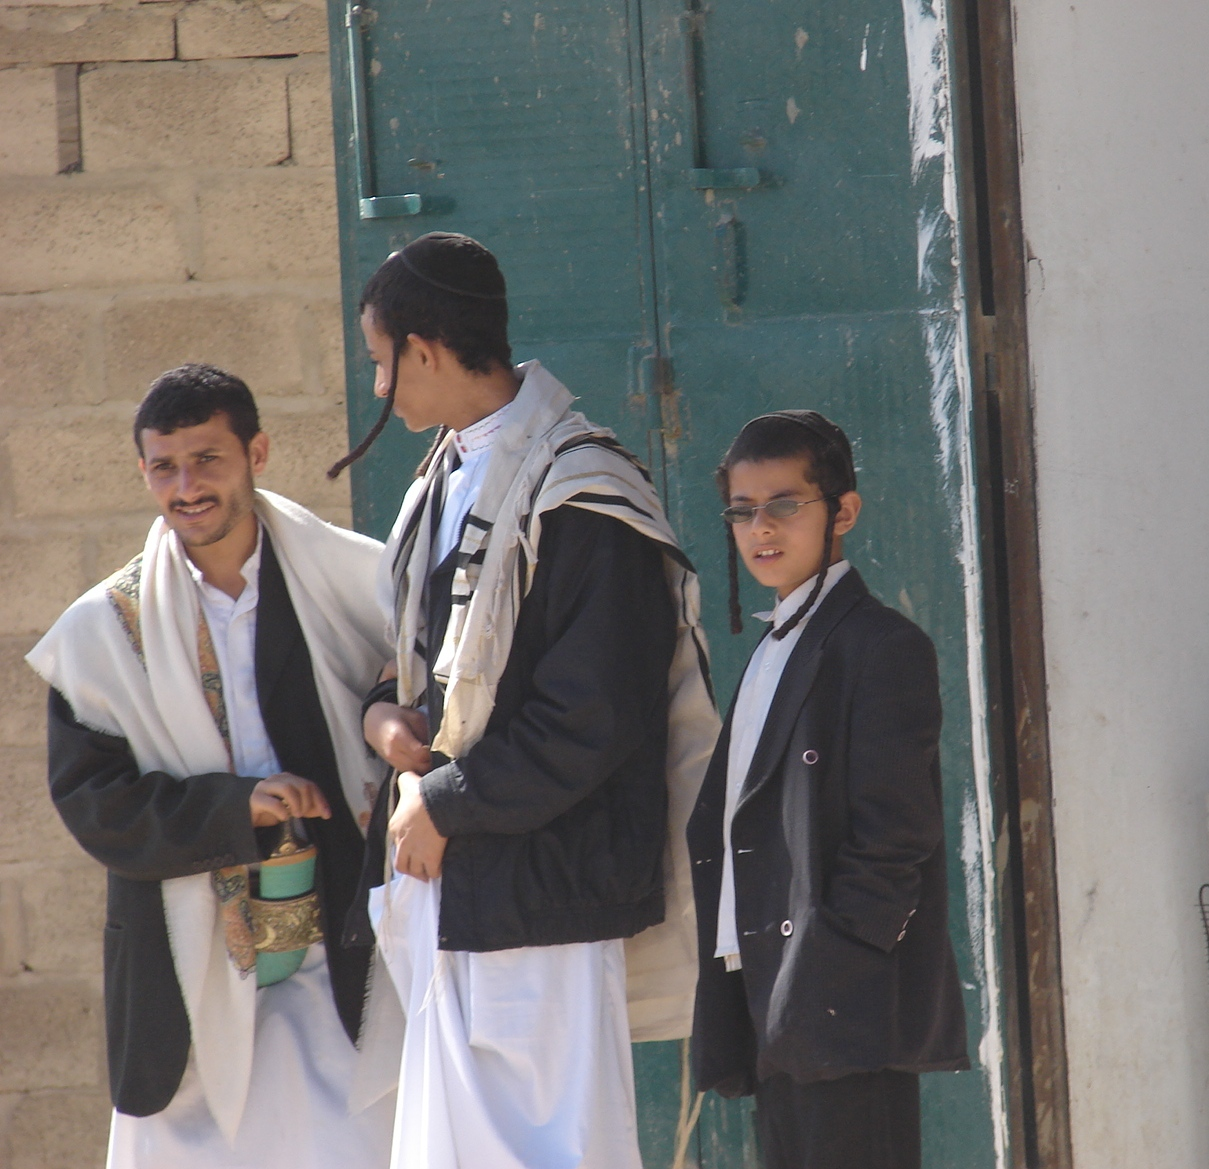 Jews in Amran Governorate say they fear for their lives